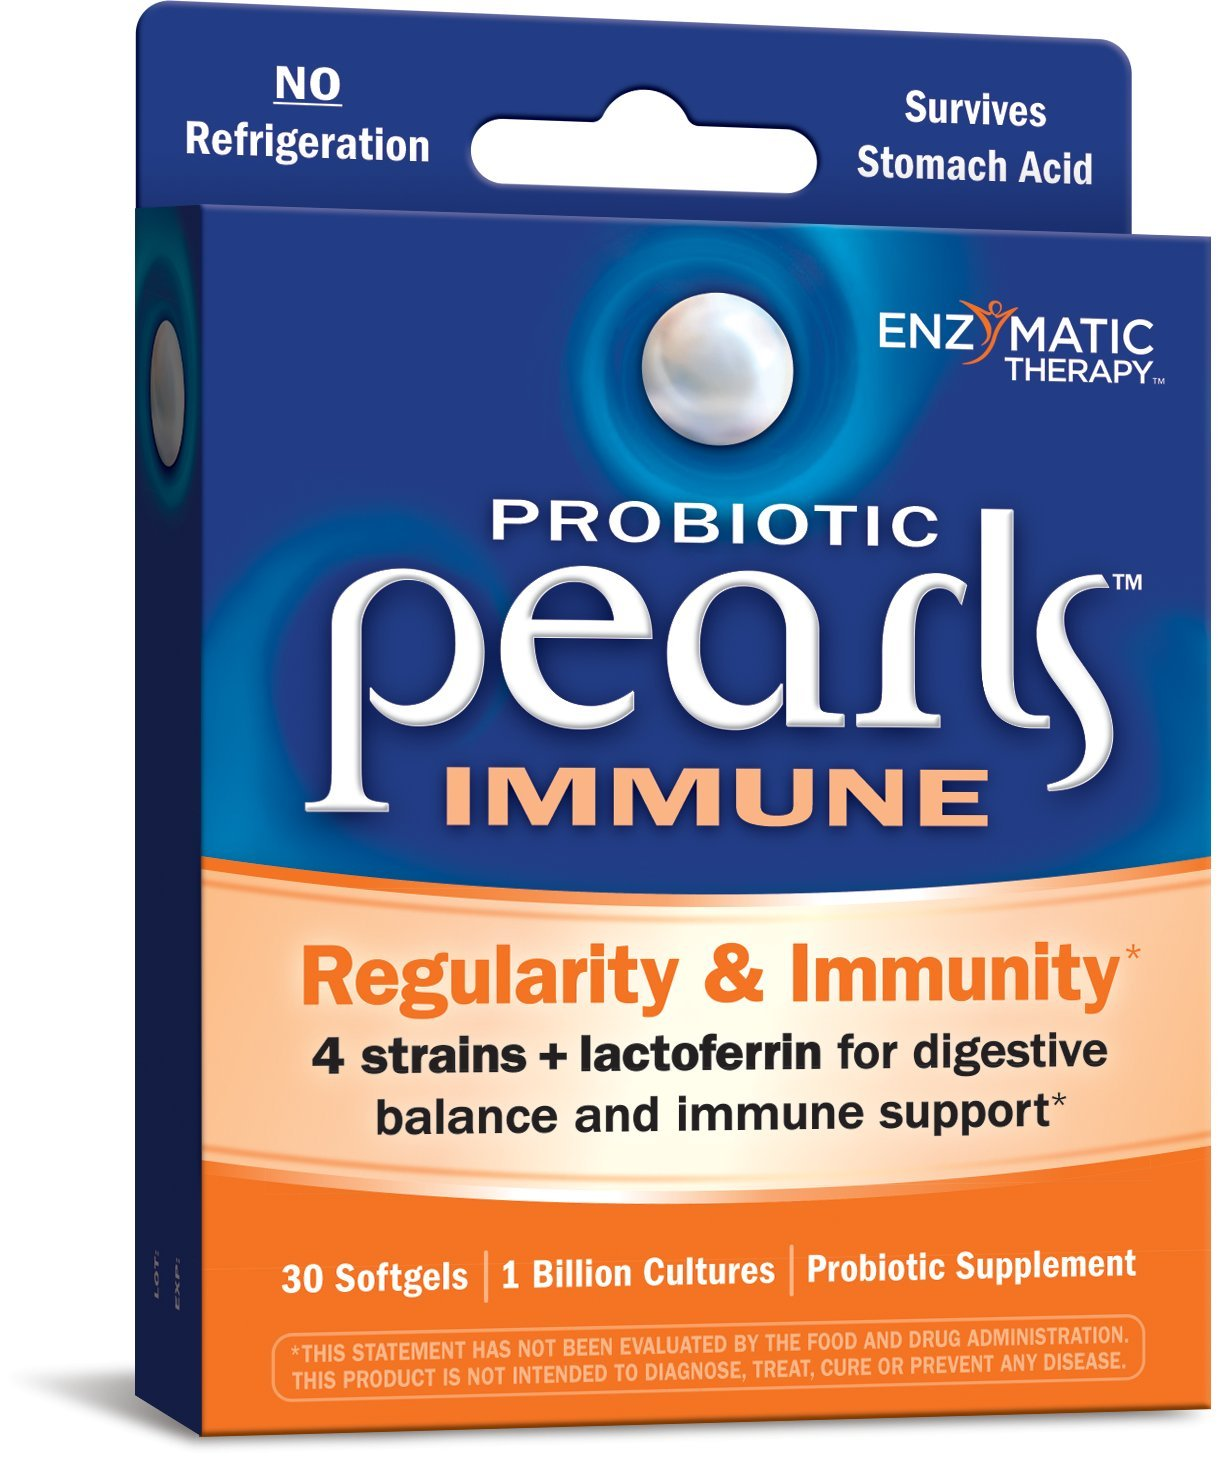 Probiotic Pearls Once Daily Immune Strengthening Probiotic Supplement, 4 Strains + Lactoferrin, 1 Billion Live Cultures, Survives Stomach Acid, No Refrigeration, 30 Softgels